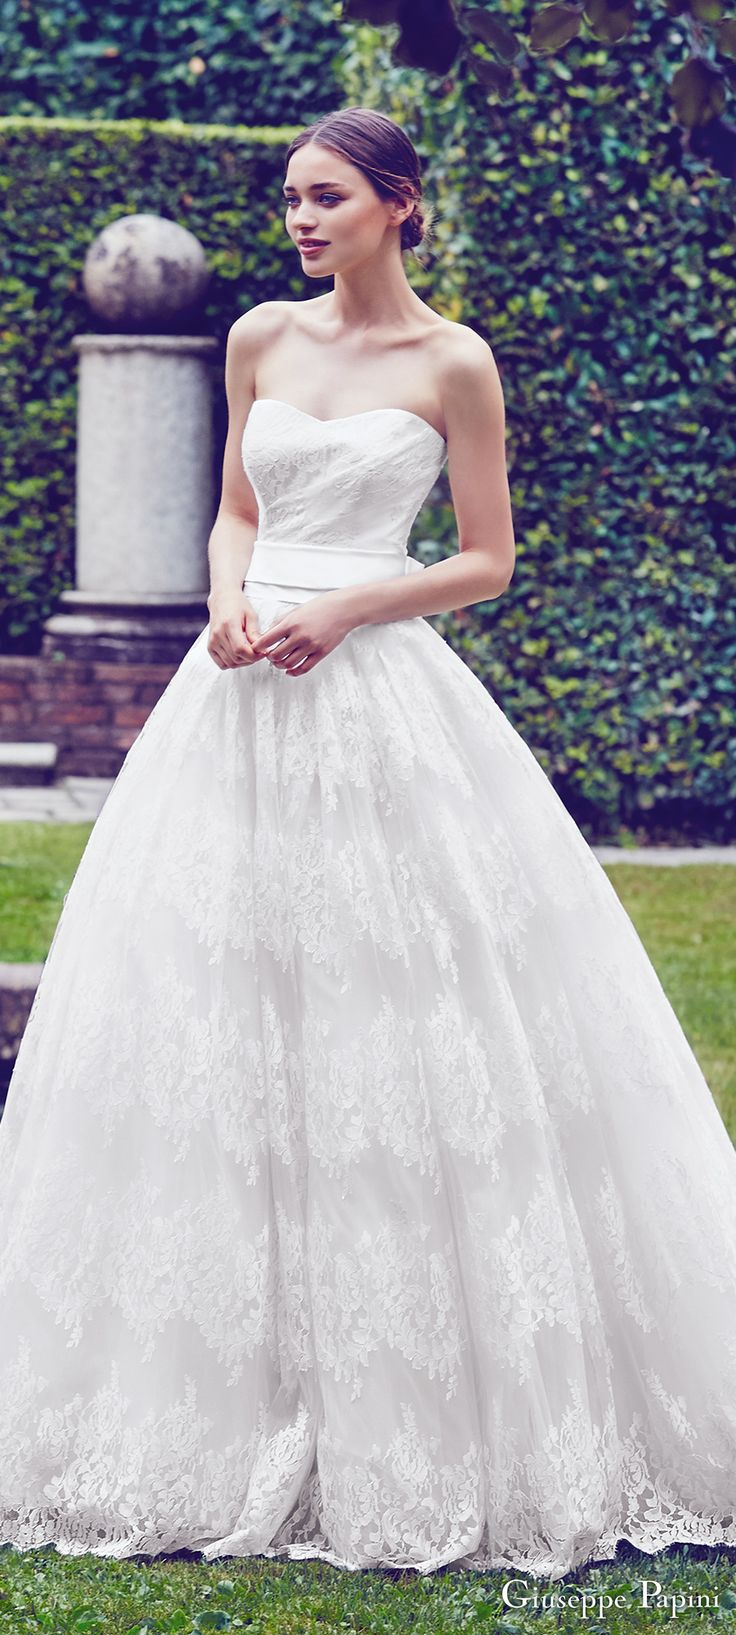 giuseppe papini 2017 (taormina) strapless sweetheart lace ball gown wedding dress zv